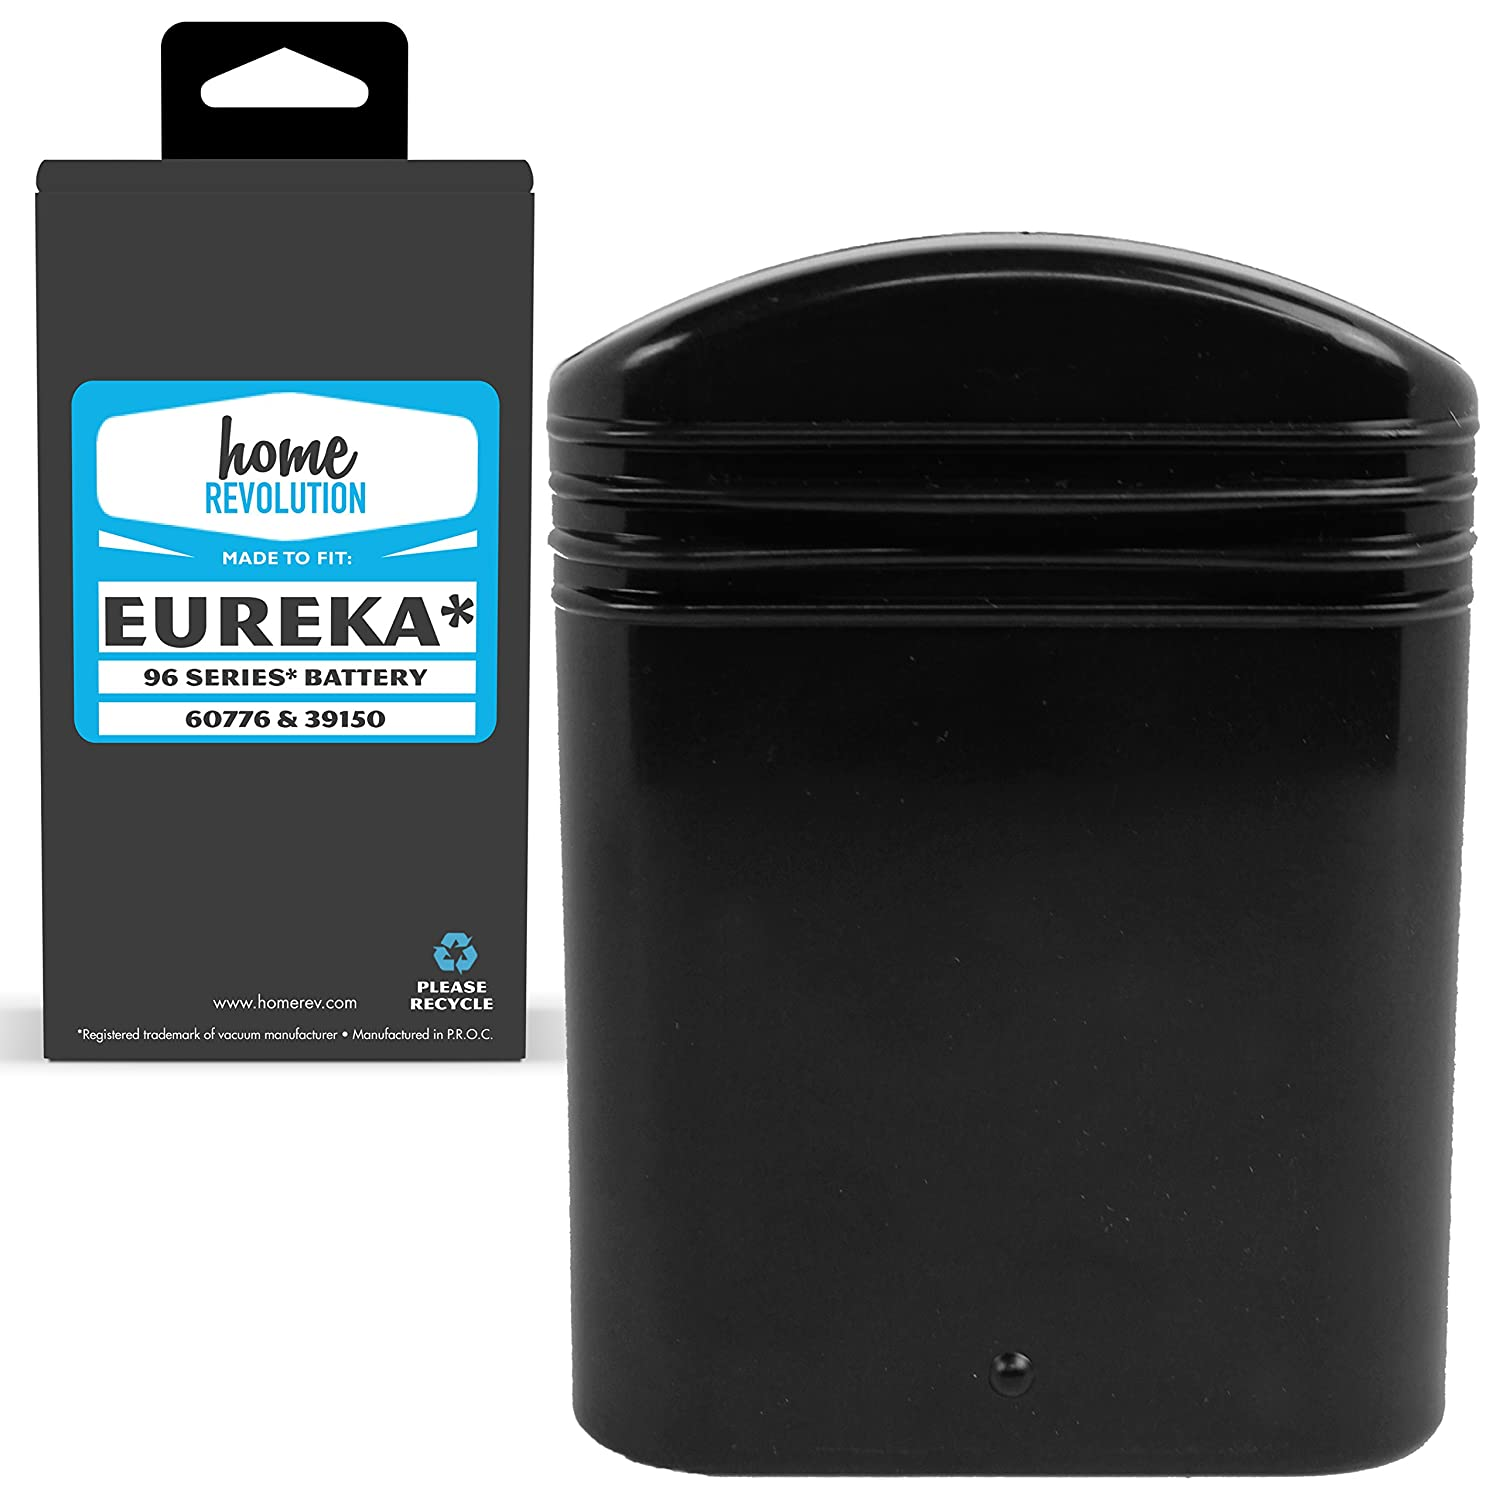 Home Revolution Replacement Battery, Fits Eureka 96, 96A, 96A-1, 96B, 96D, 96H, 96JZ, 97A and Parts 25-0010-02, 39150, 60776, & 68112